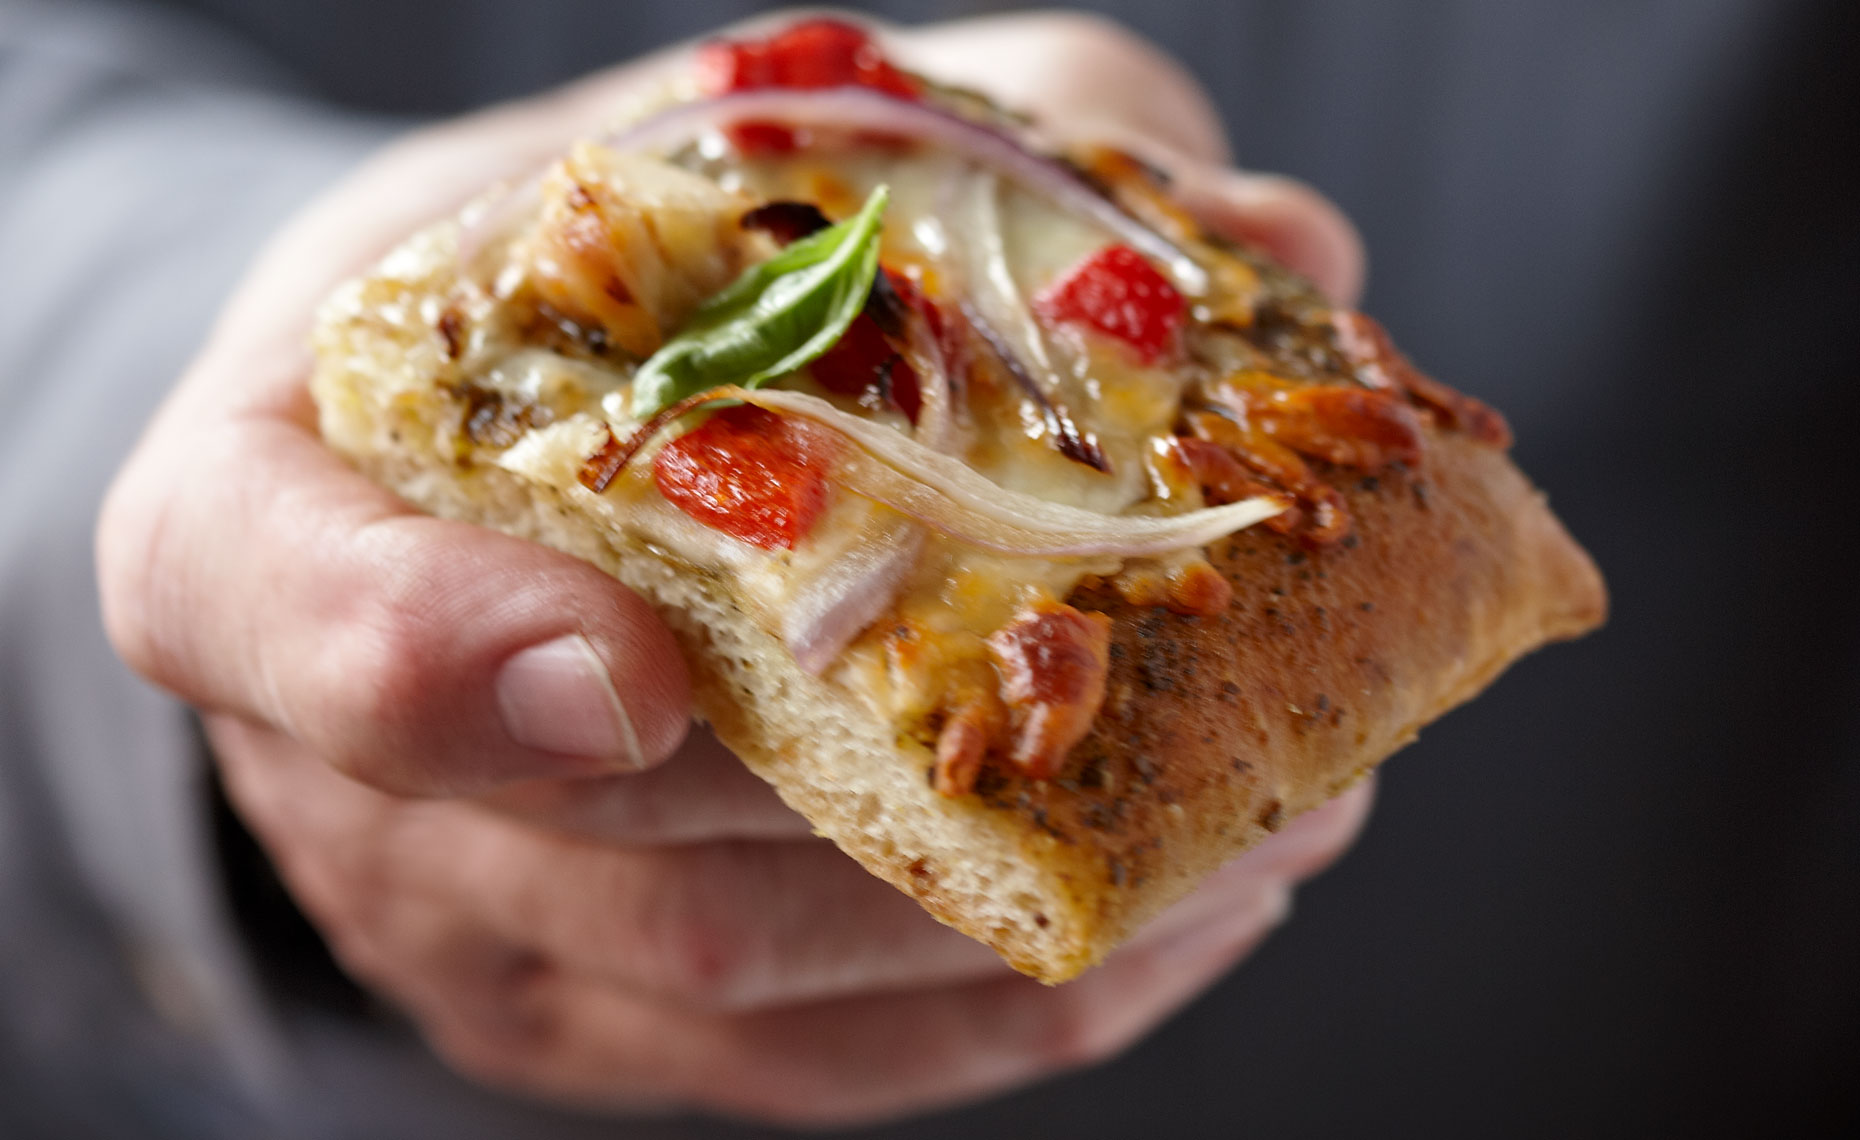 pizza-pasta-bread-photographers-pizza-flatbread-06